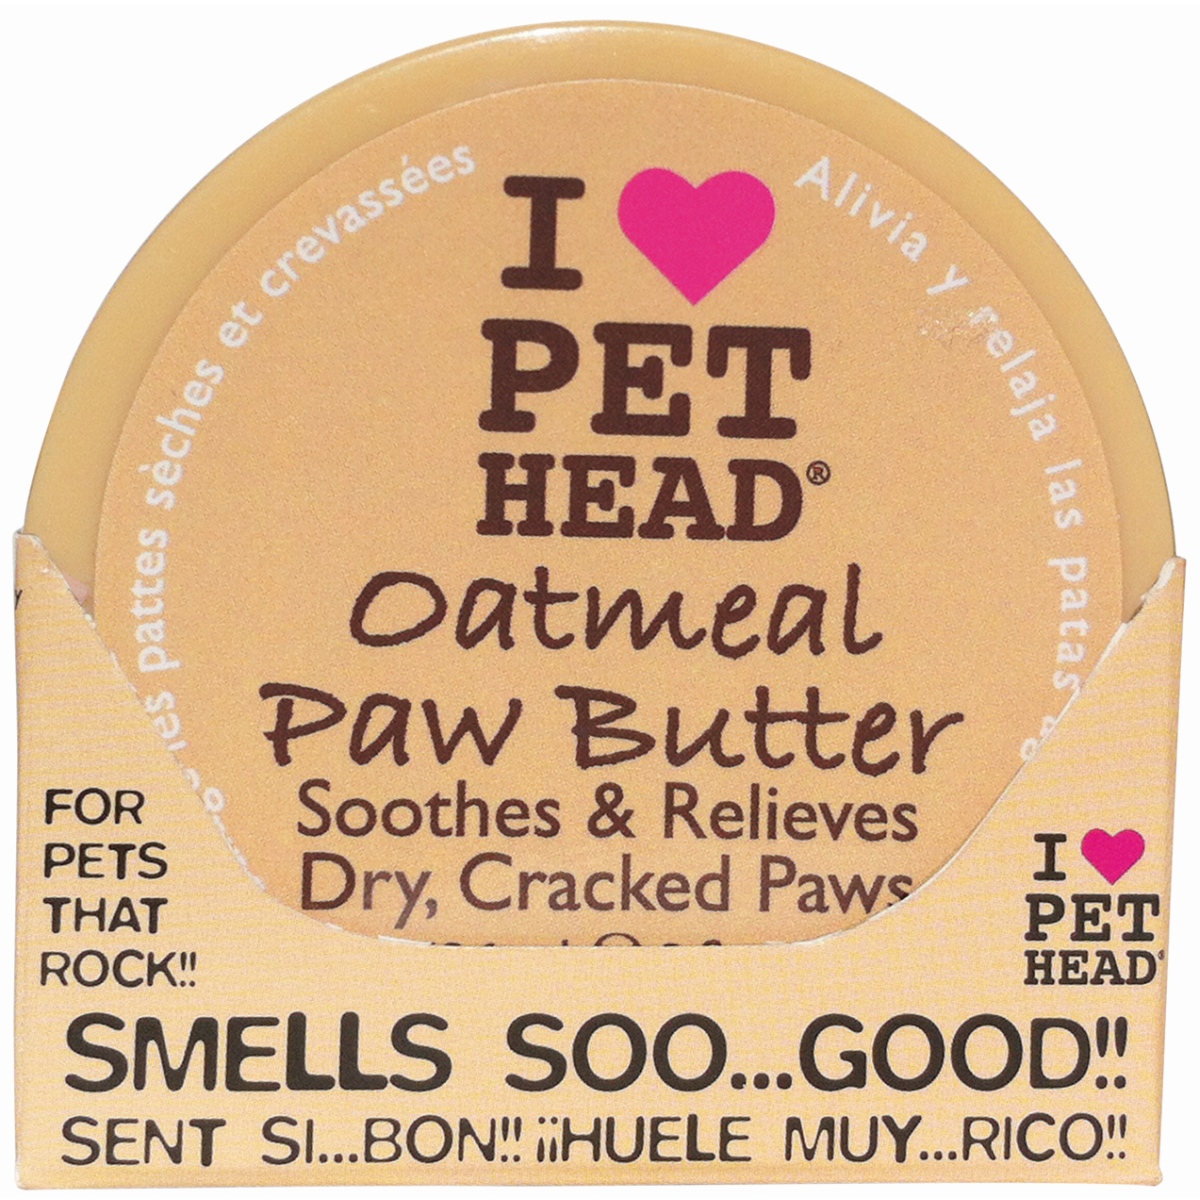 PH OATMEAL PAW BUTTER 00001